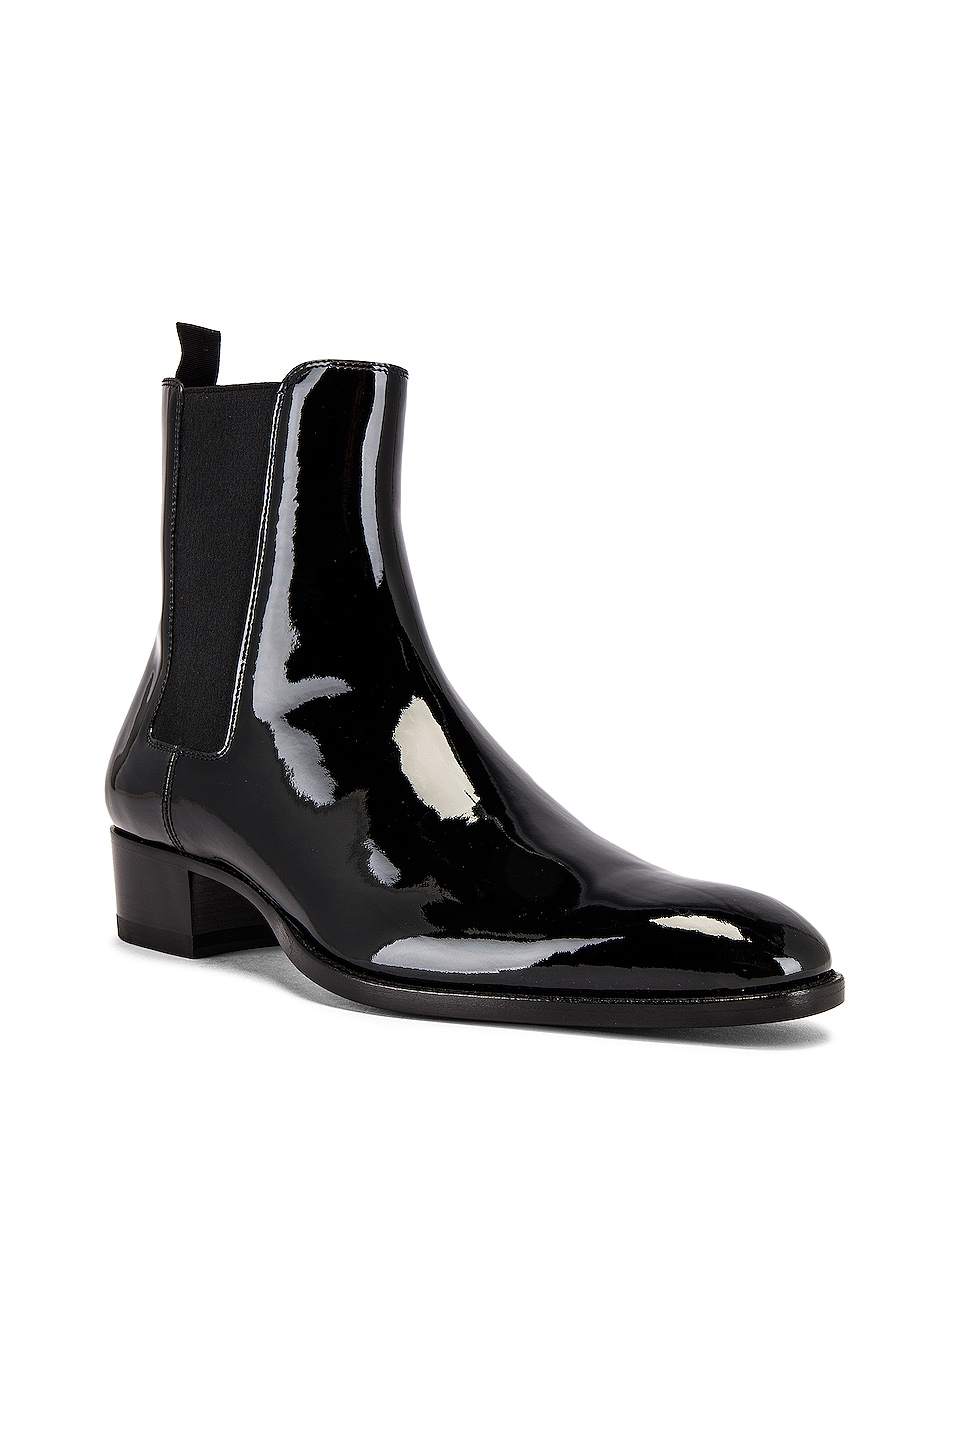 Image 1 of Saint Laurent Leather Boots in Black